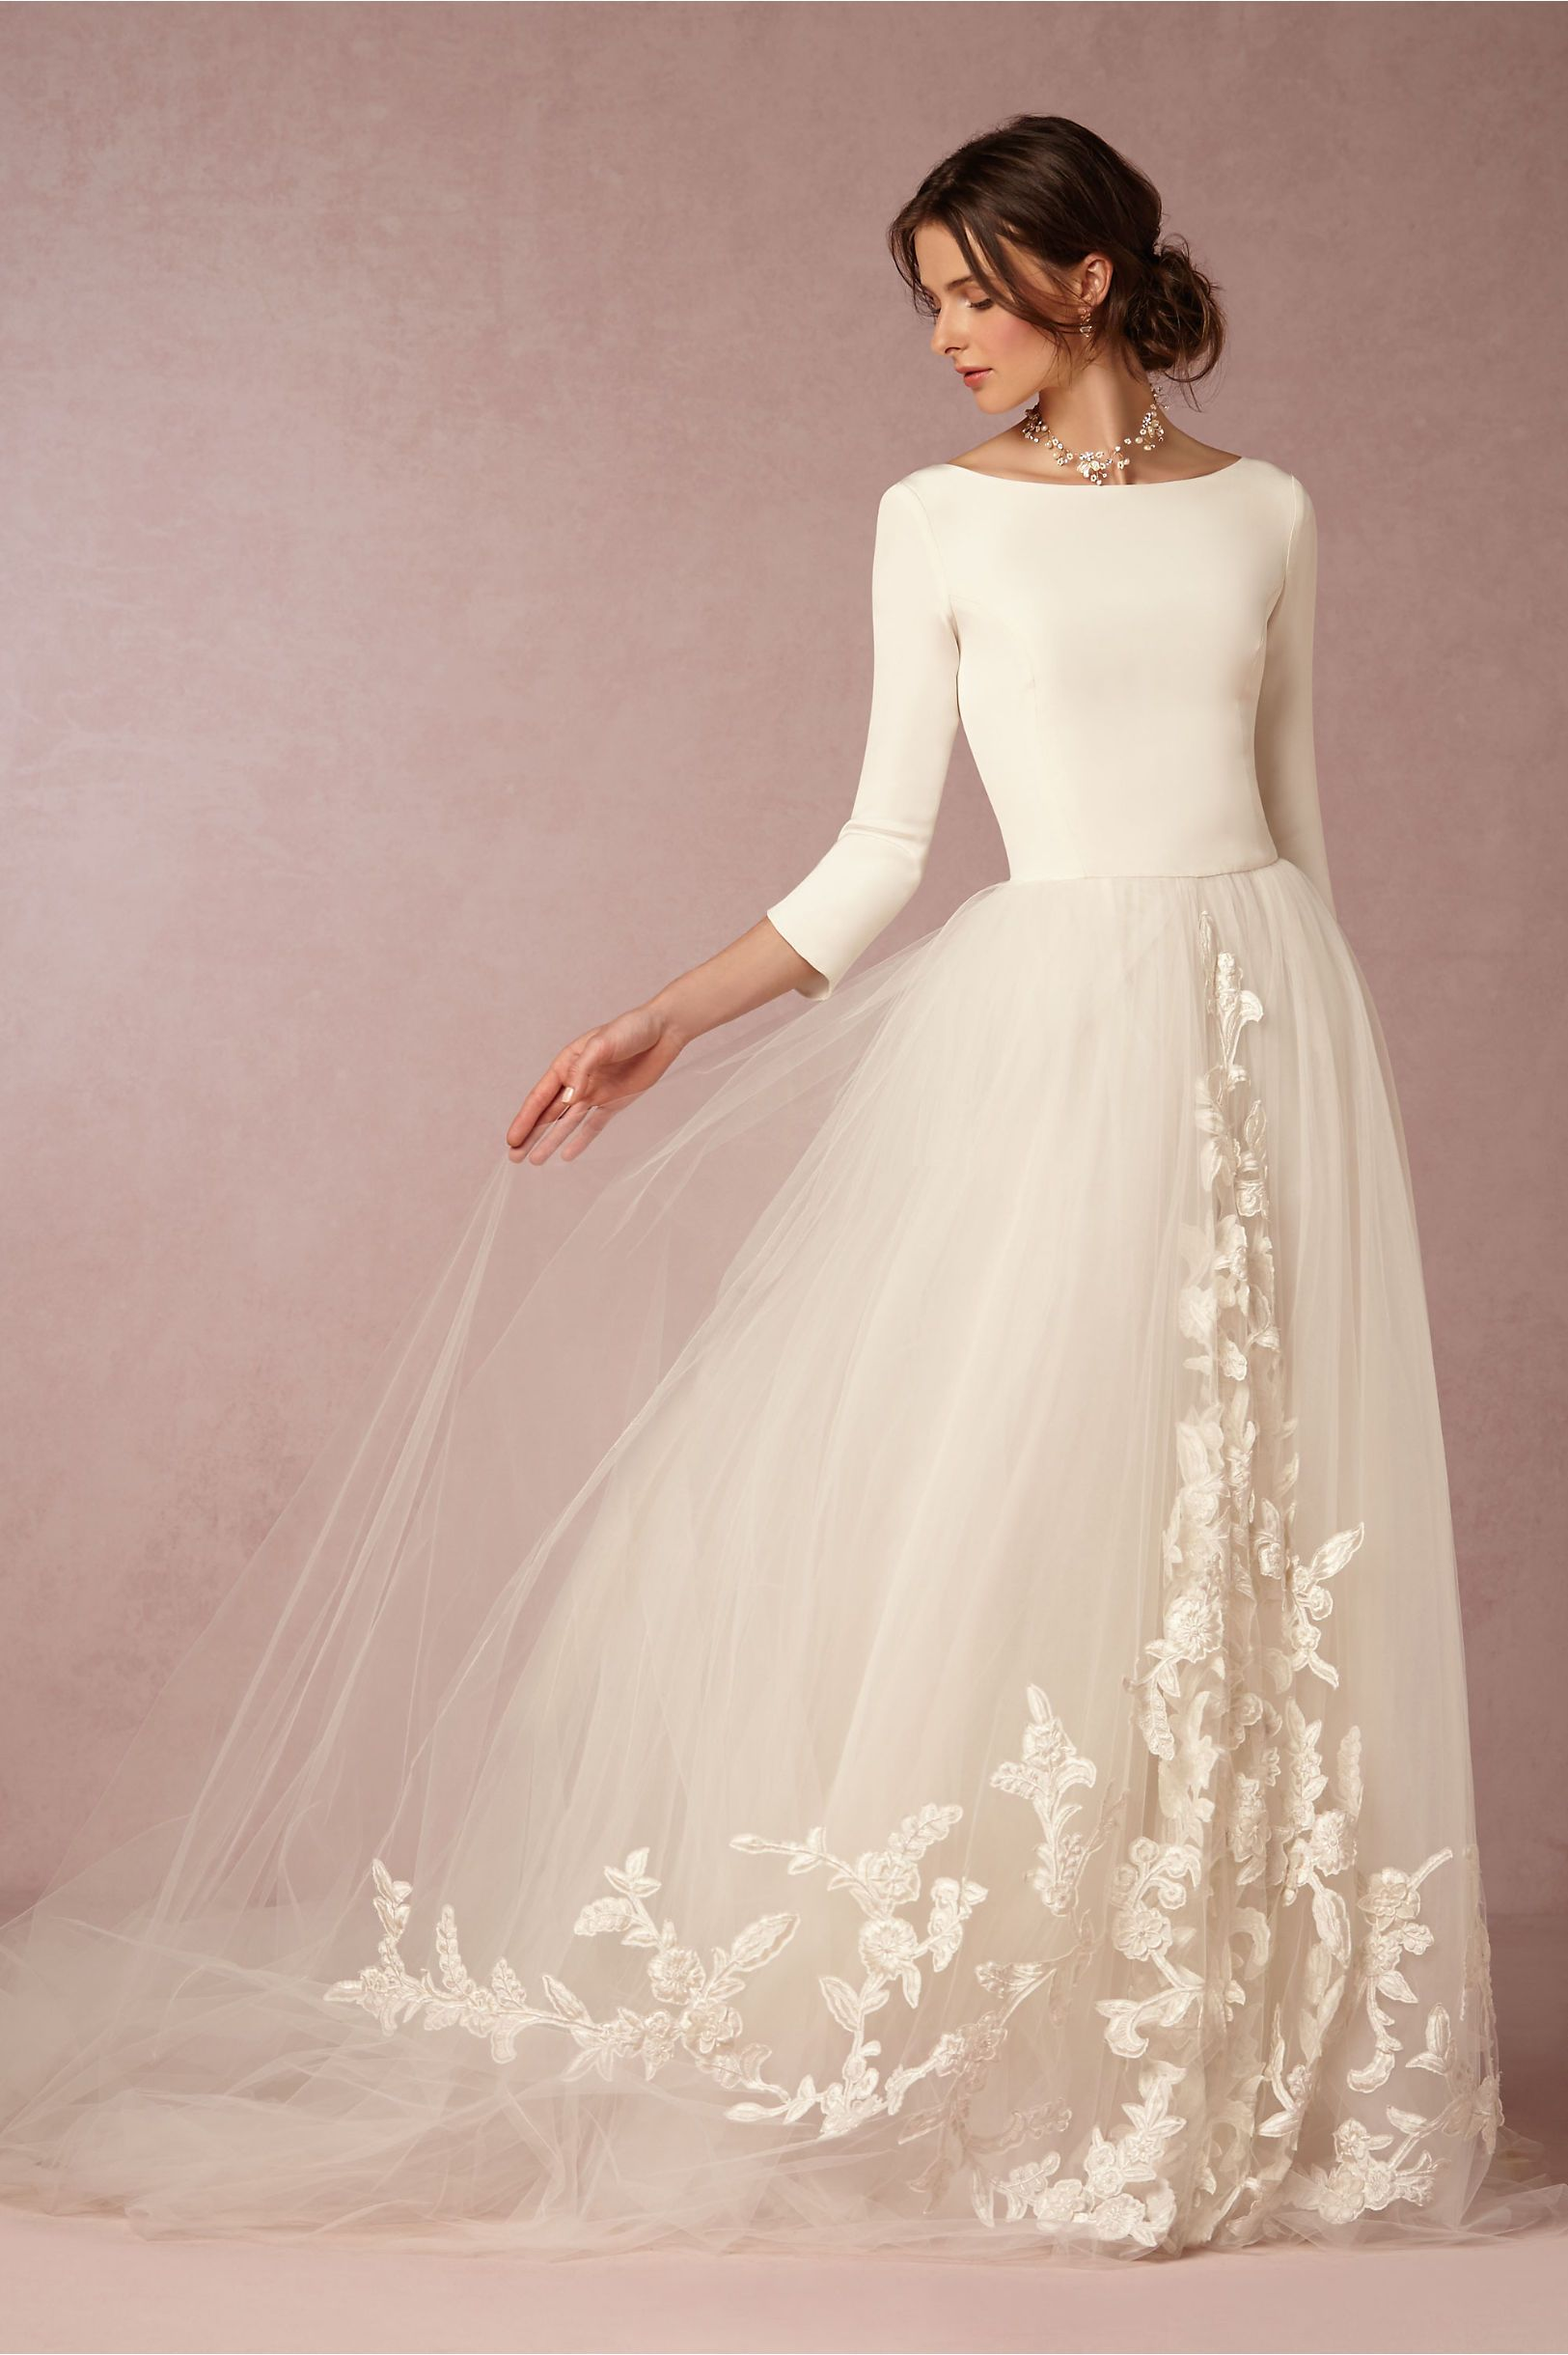 Winter wedding dresses: 17 beautiful bridal gowns for your winter ...